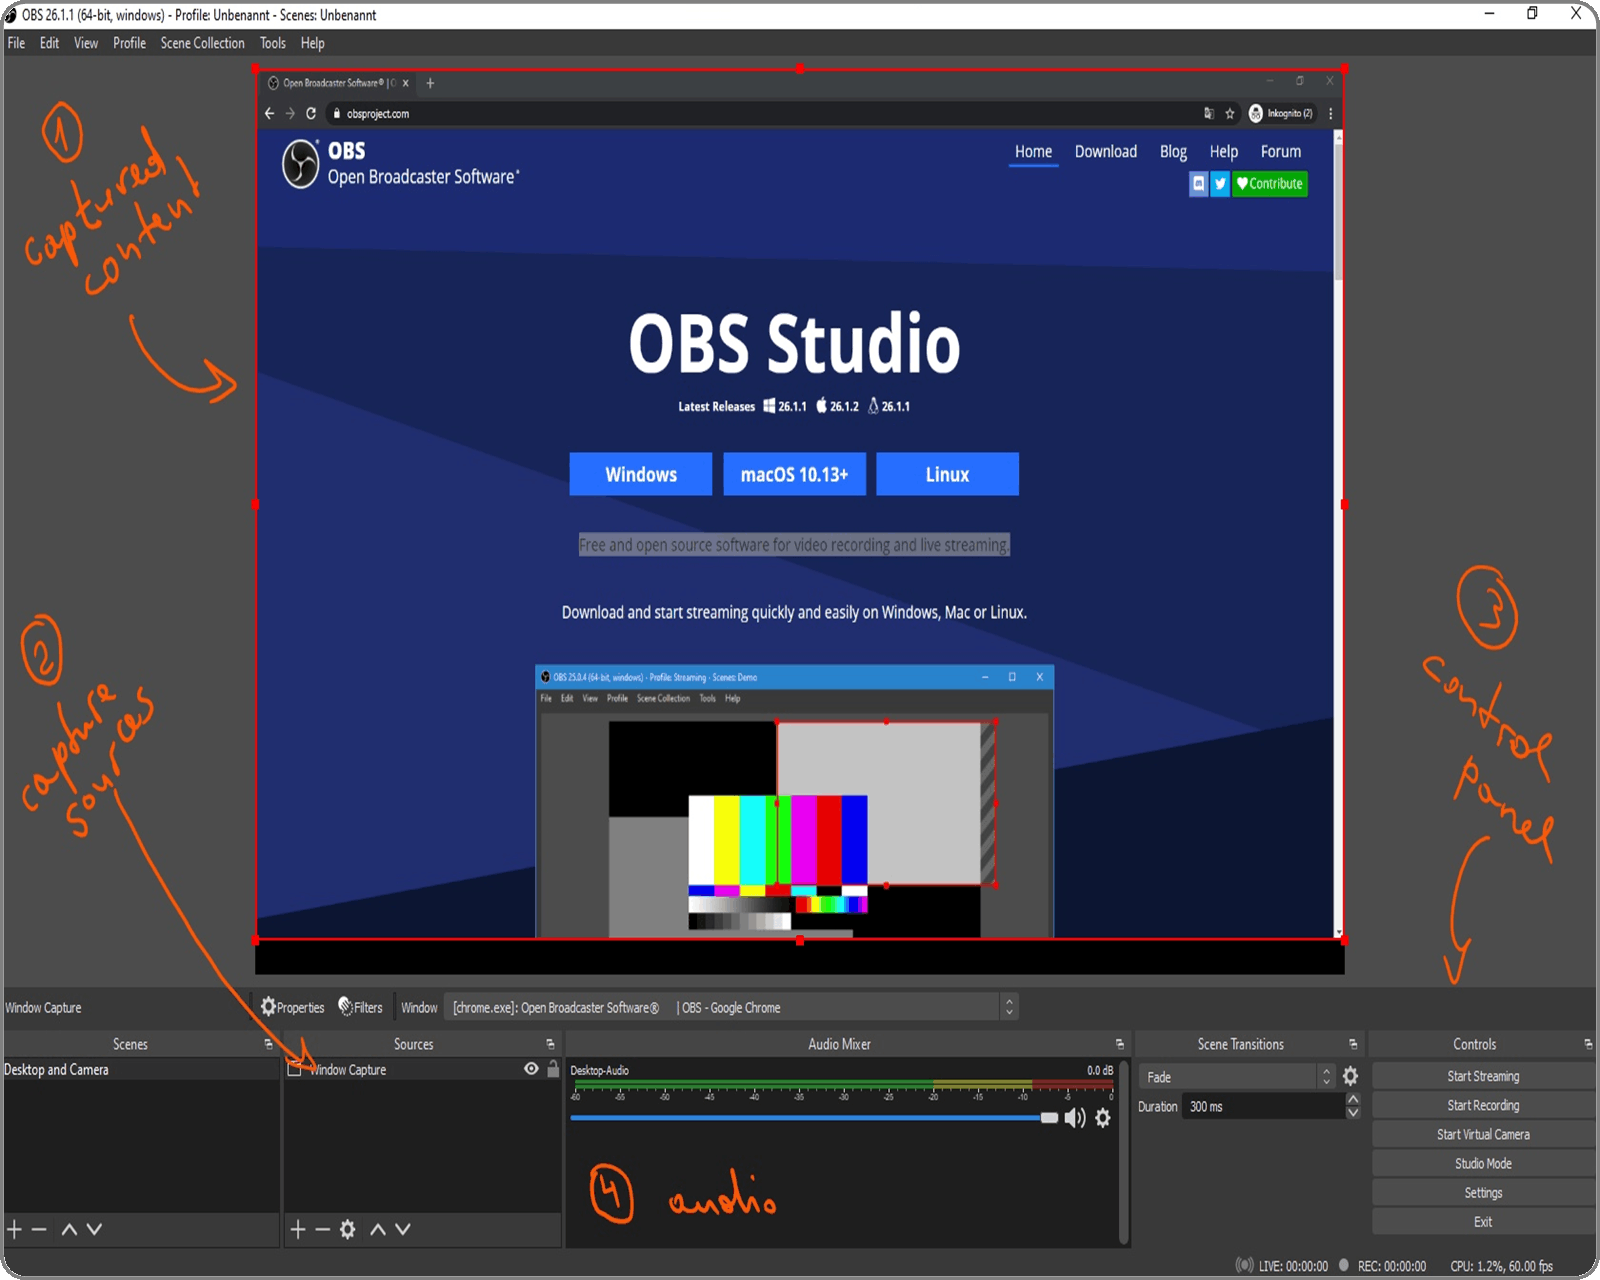 obs_09_obs_layout_components.png